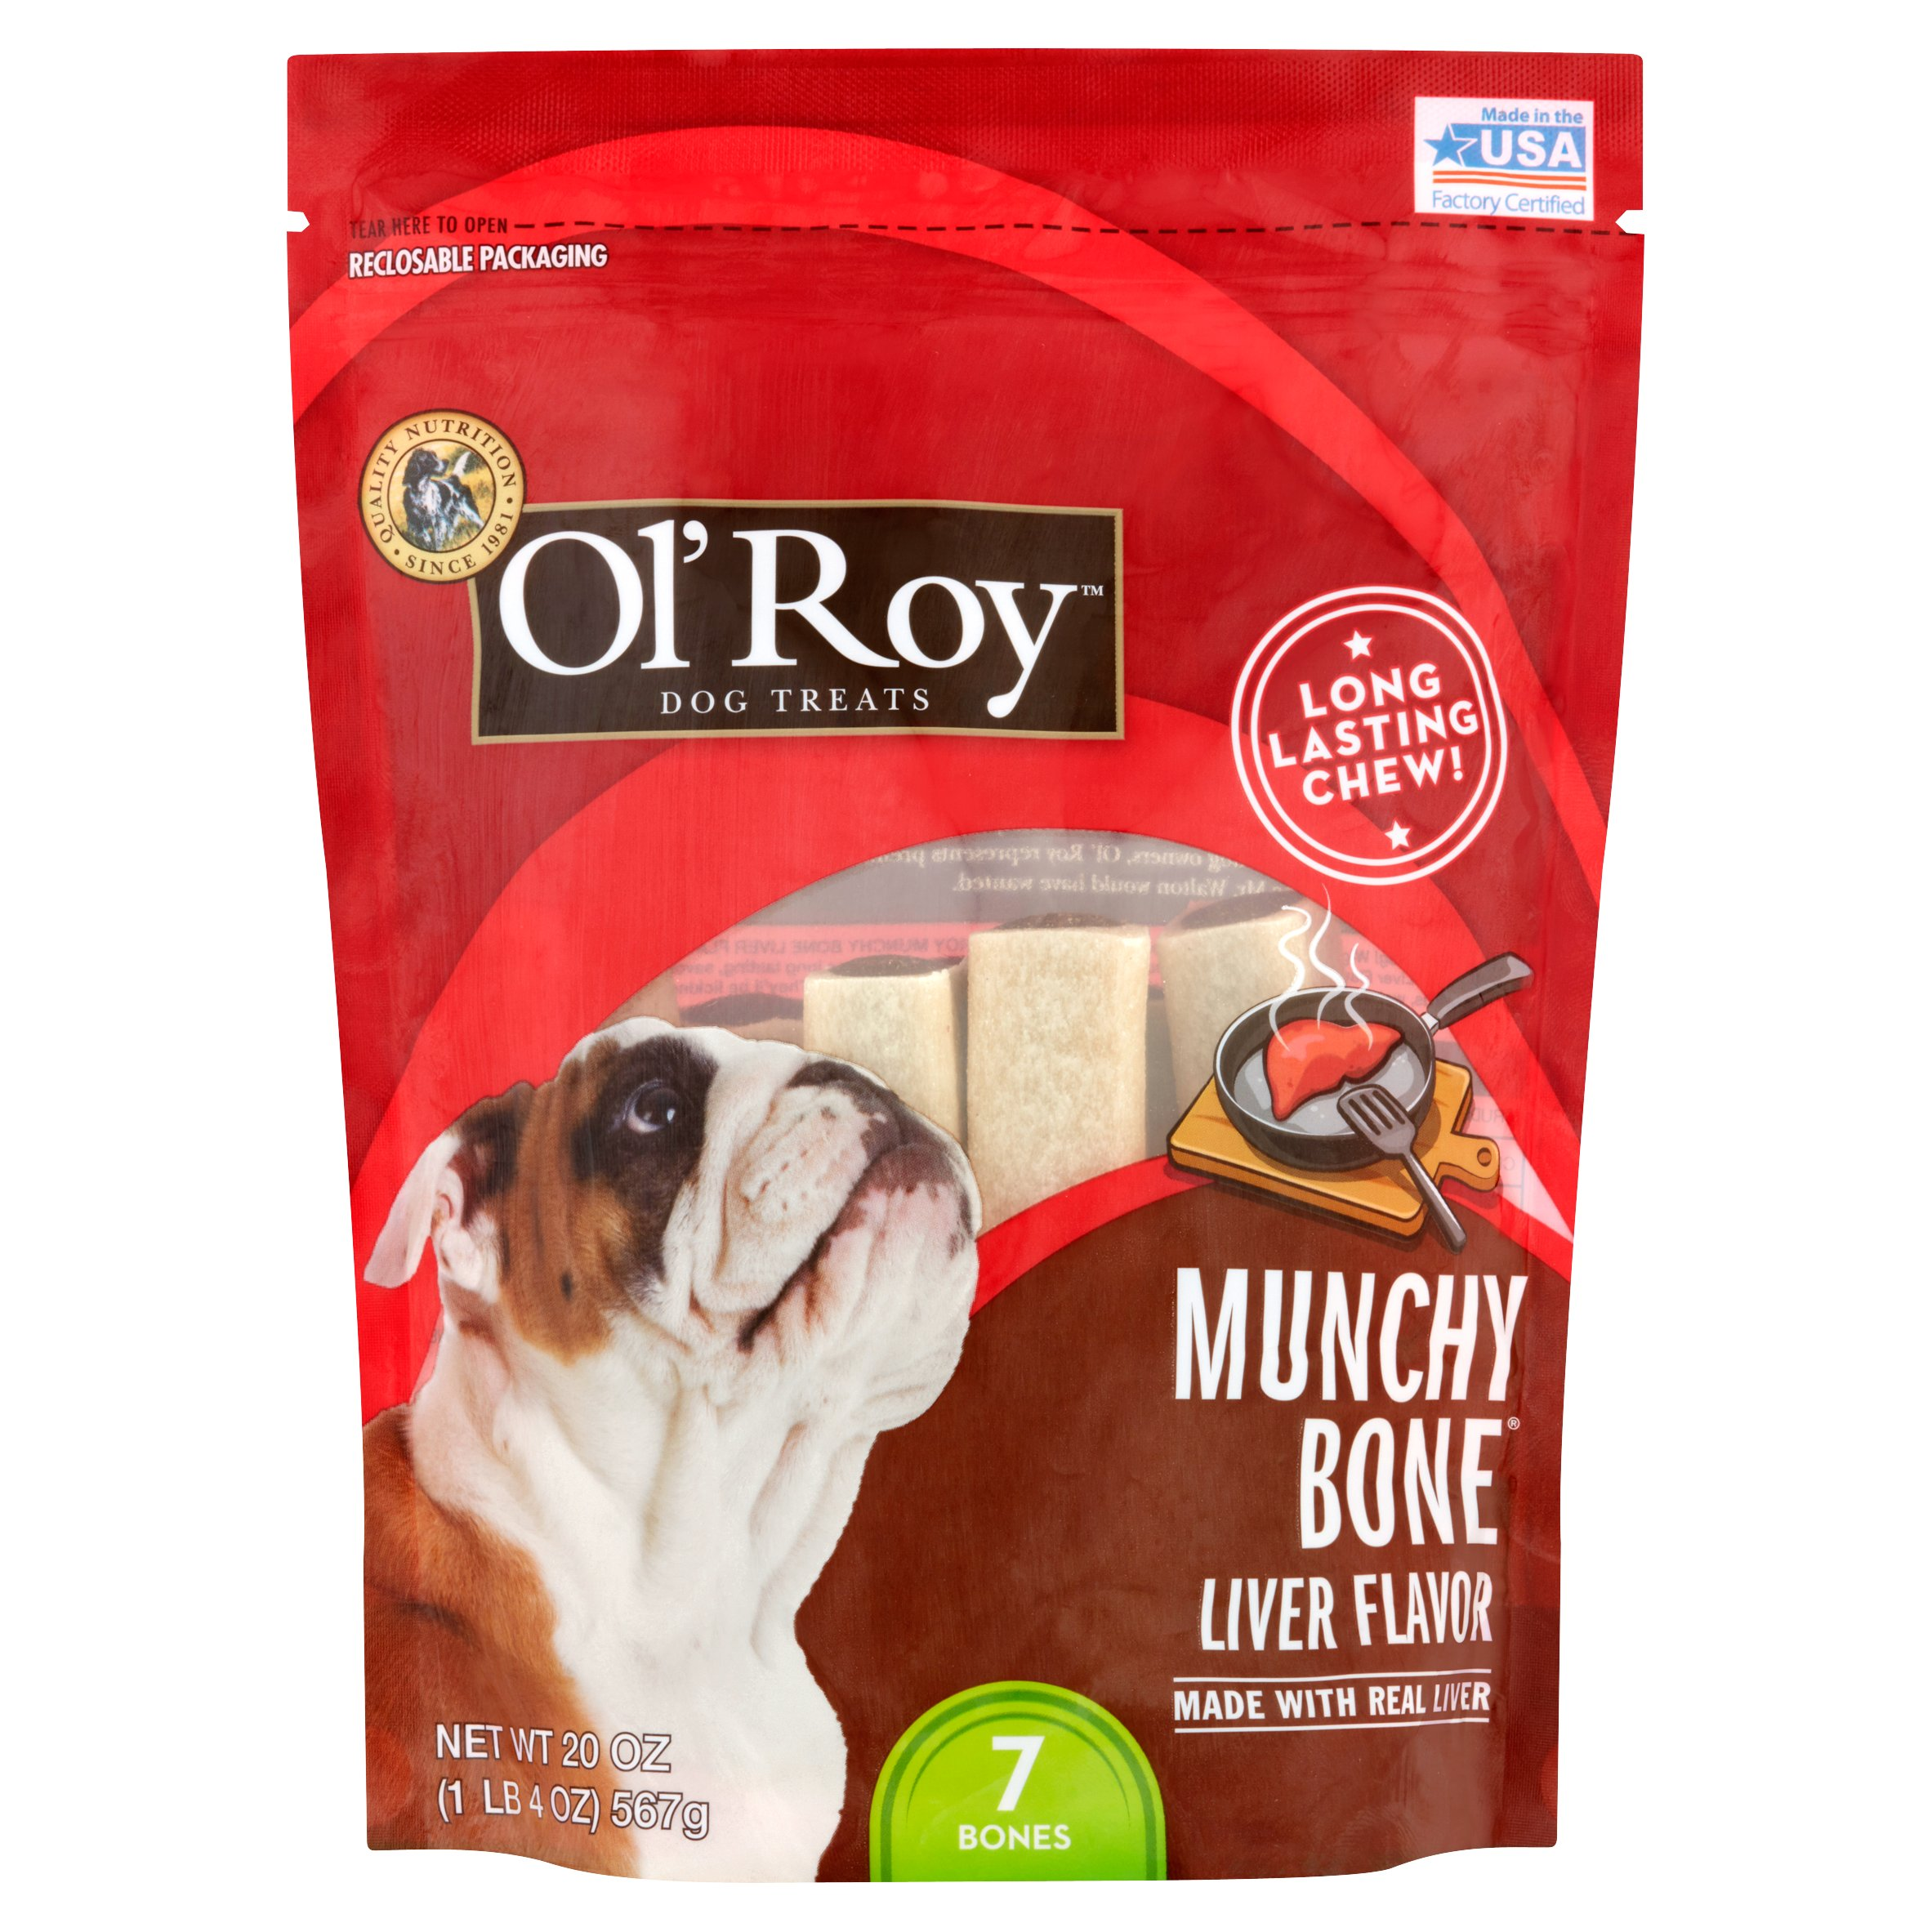 Ol' Roy Munchy Bone Liver Flavor Chews Dog Treats, 7 Ct